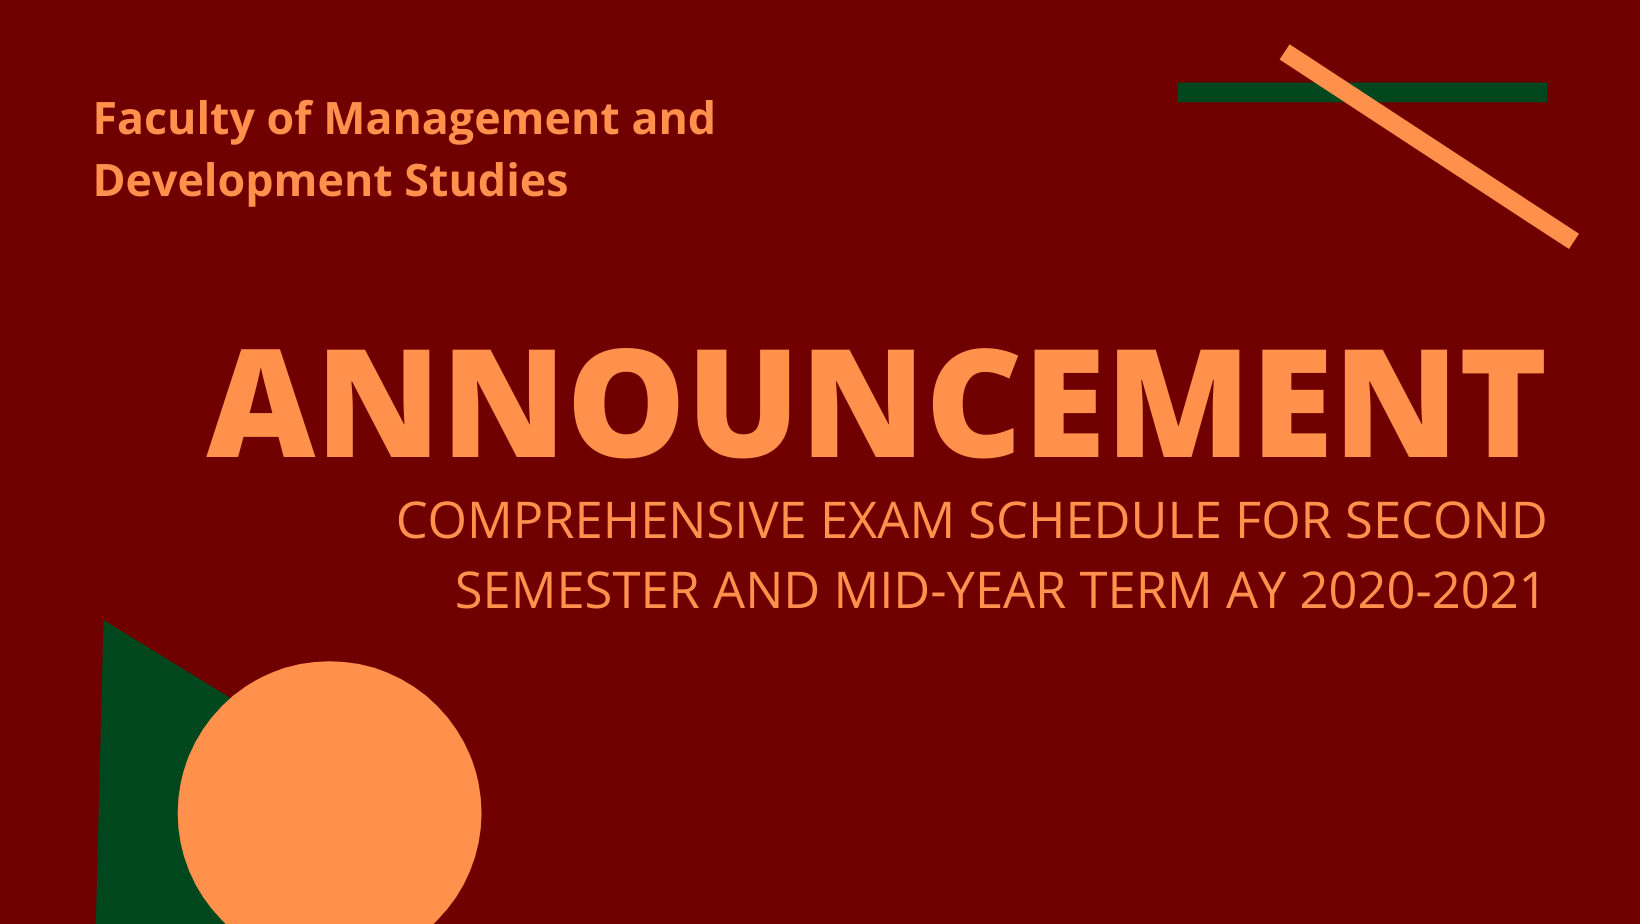 Comprehensive Exam Schedule - 2nd Sem MYT 2020-2021